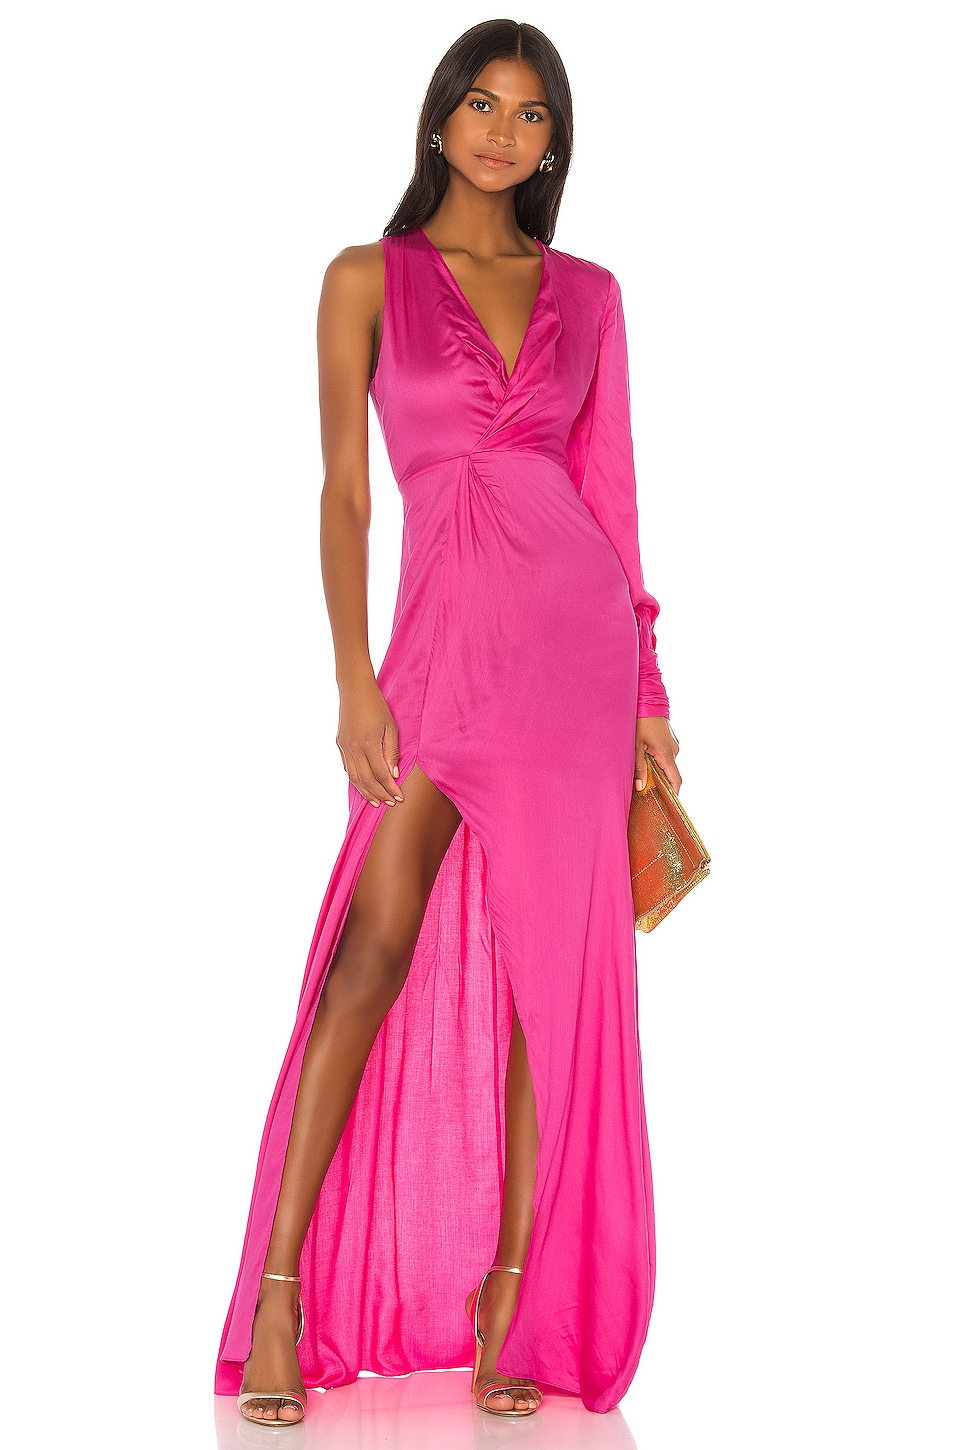 Alexis X REVOLVE Baila Dress in Neon Pink